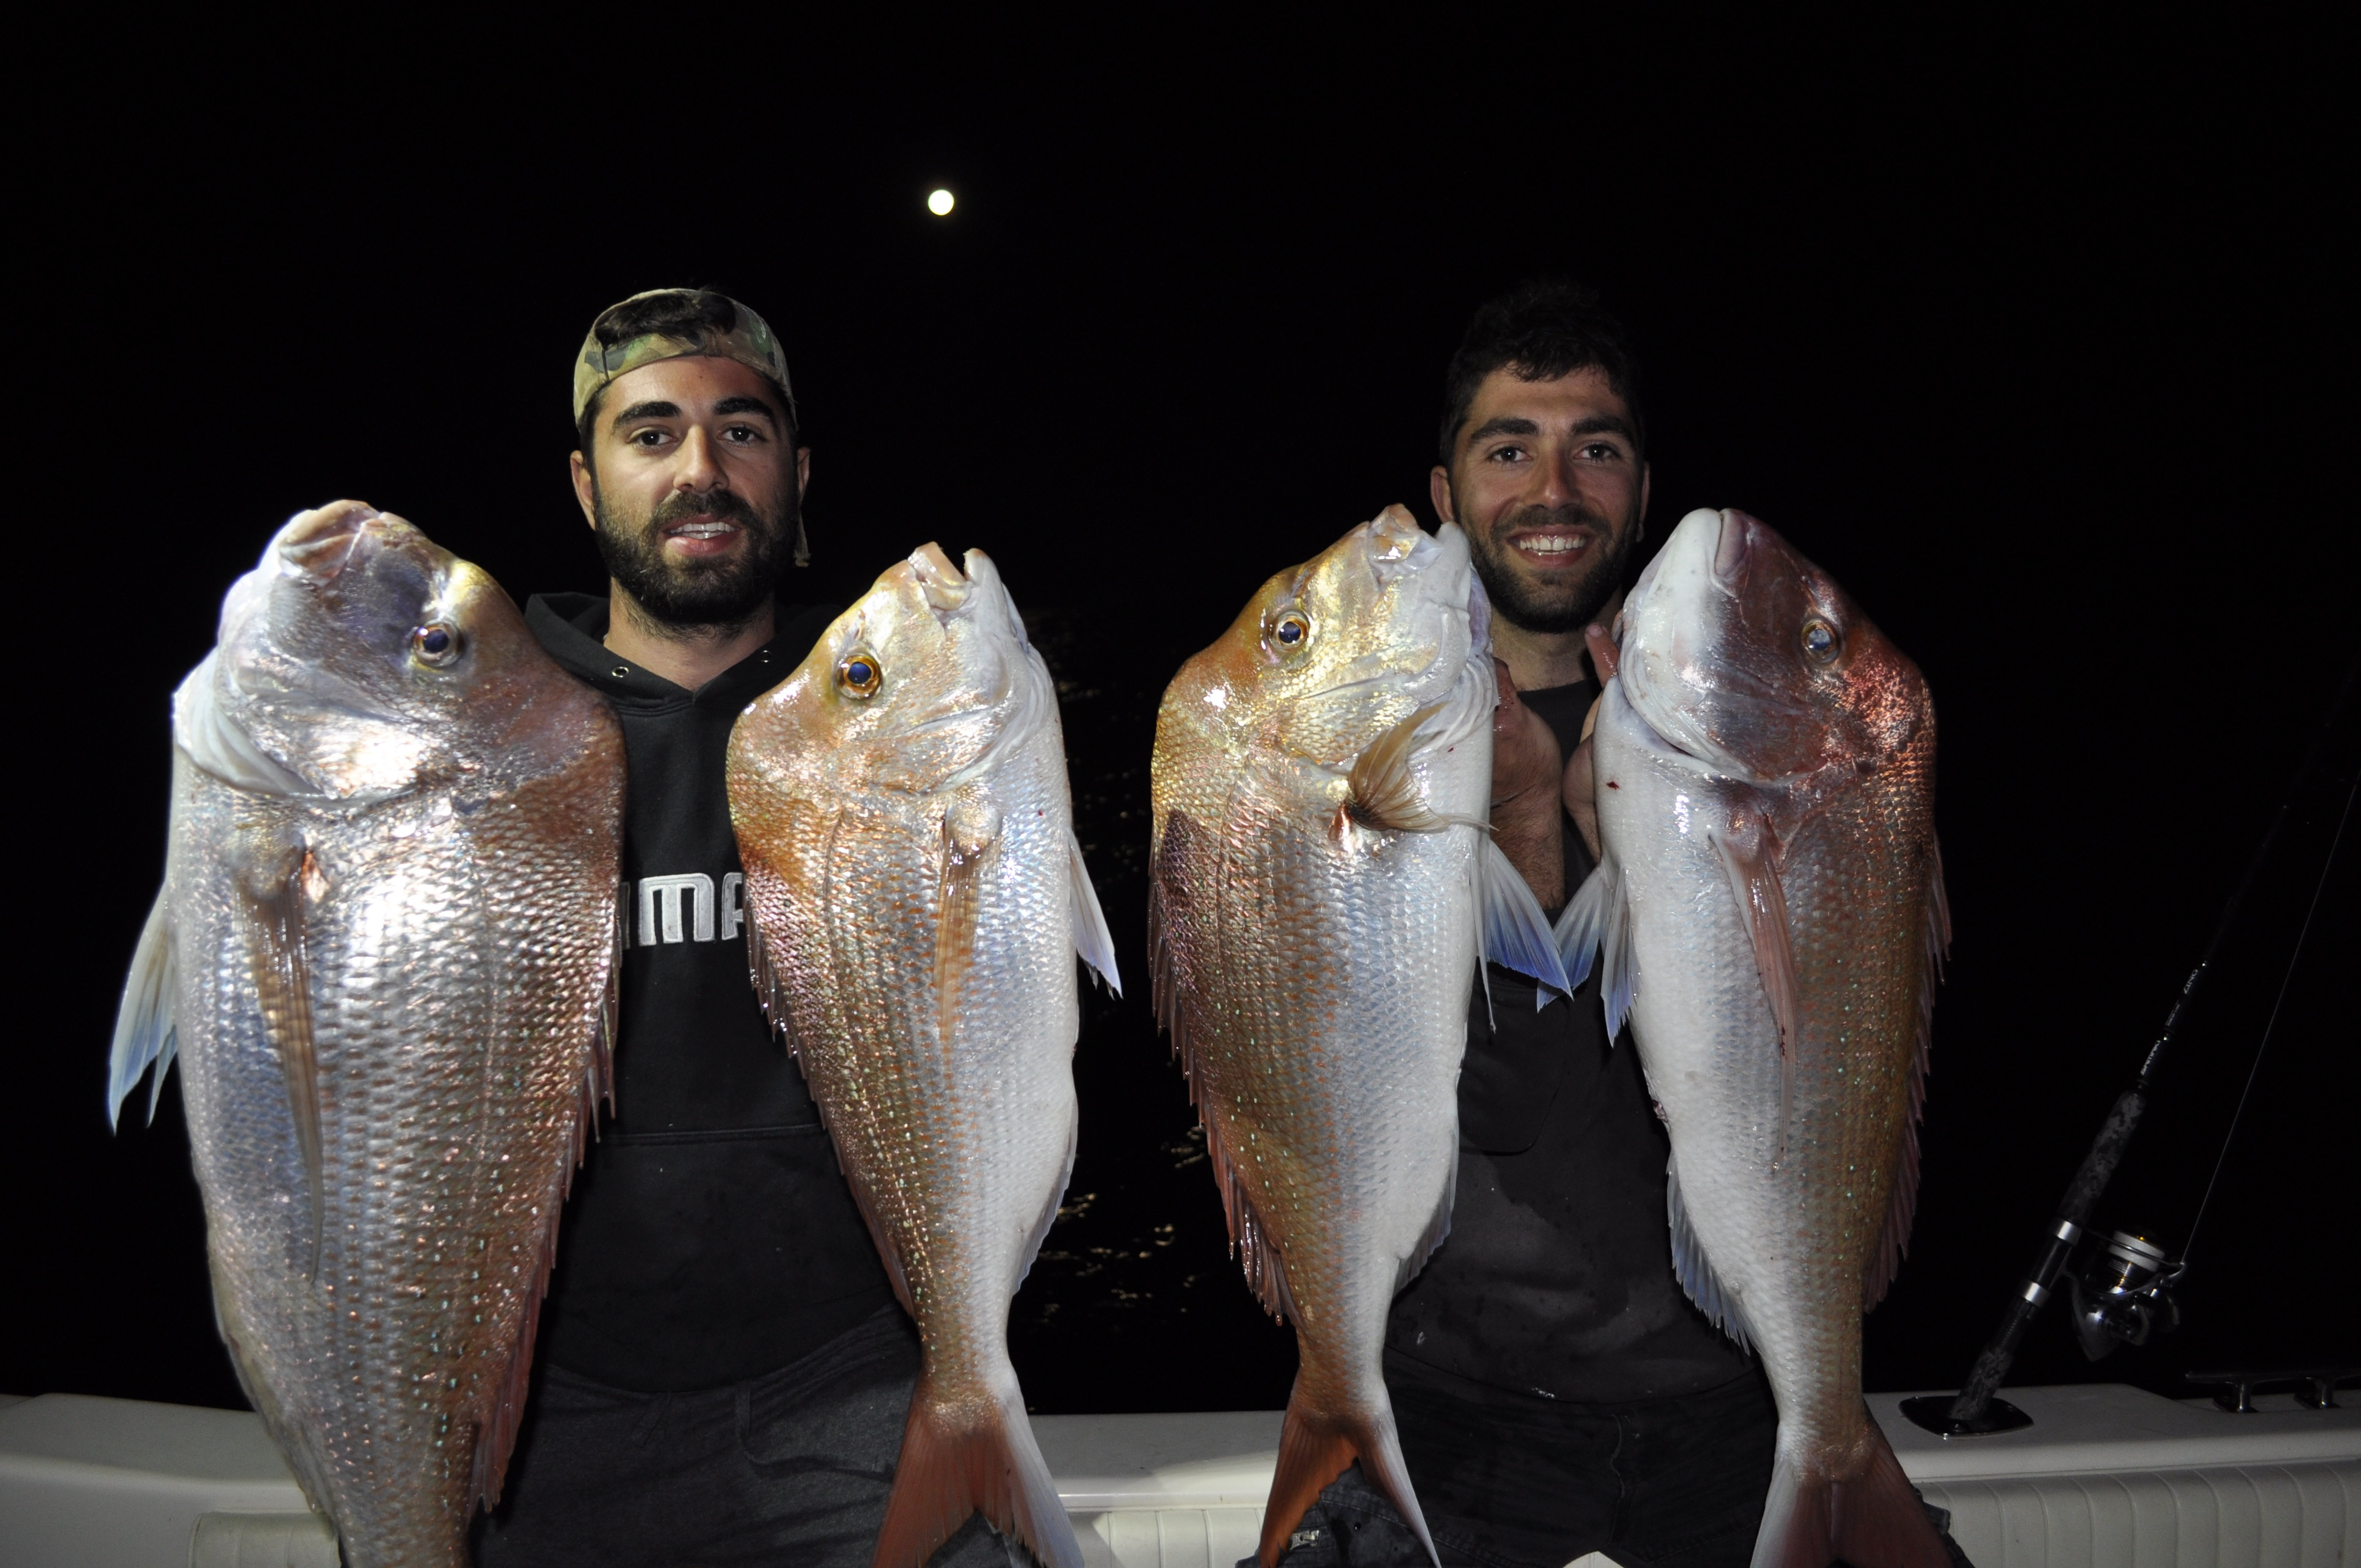 Peter and Angelo showed off some quality snapper hooked on a recent full-moon trip to the Banks.